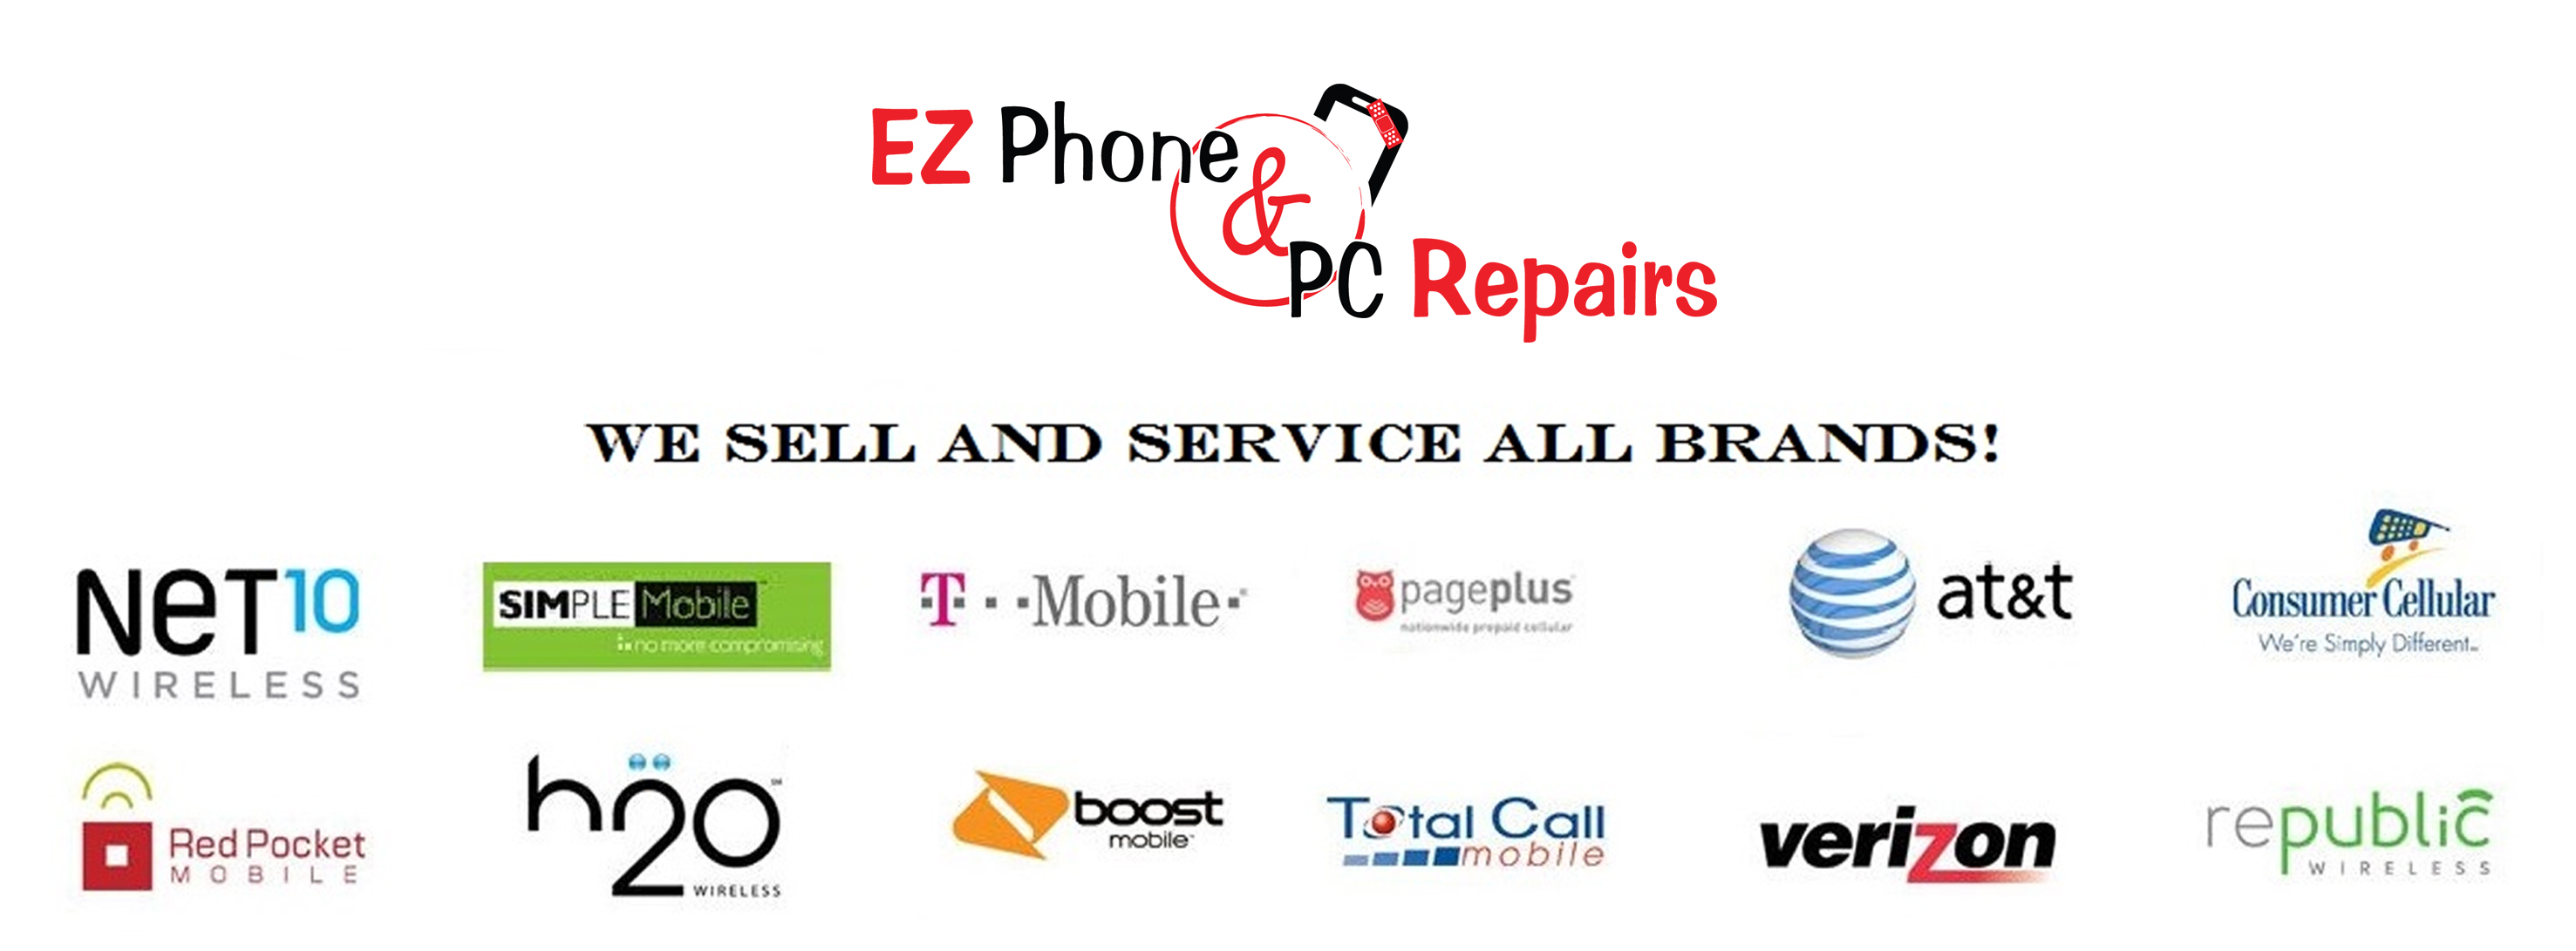 Other carriers – Ez Phone N PC repairs